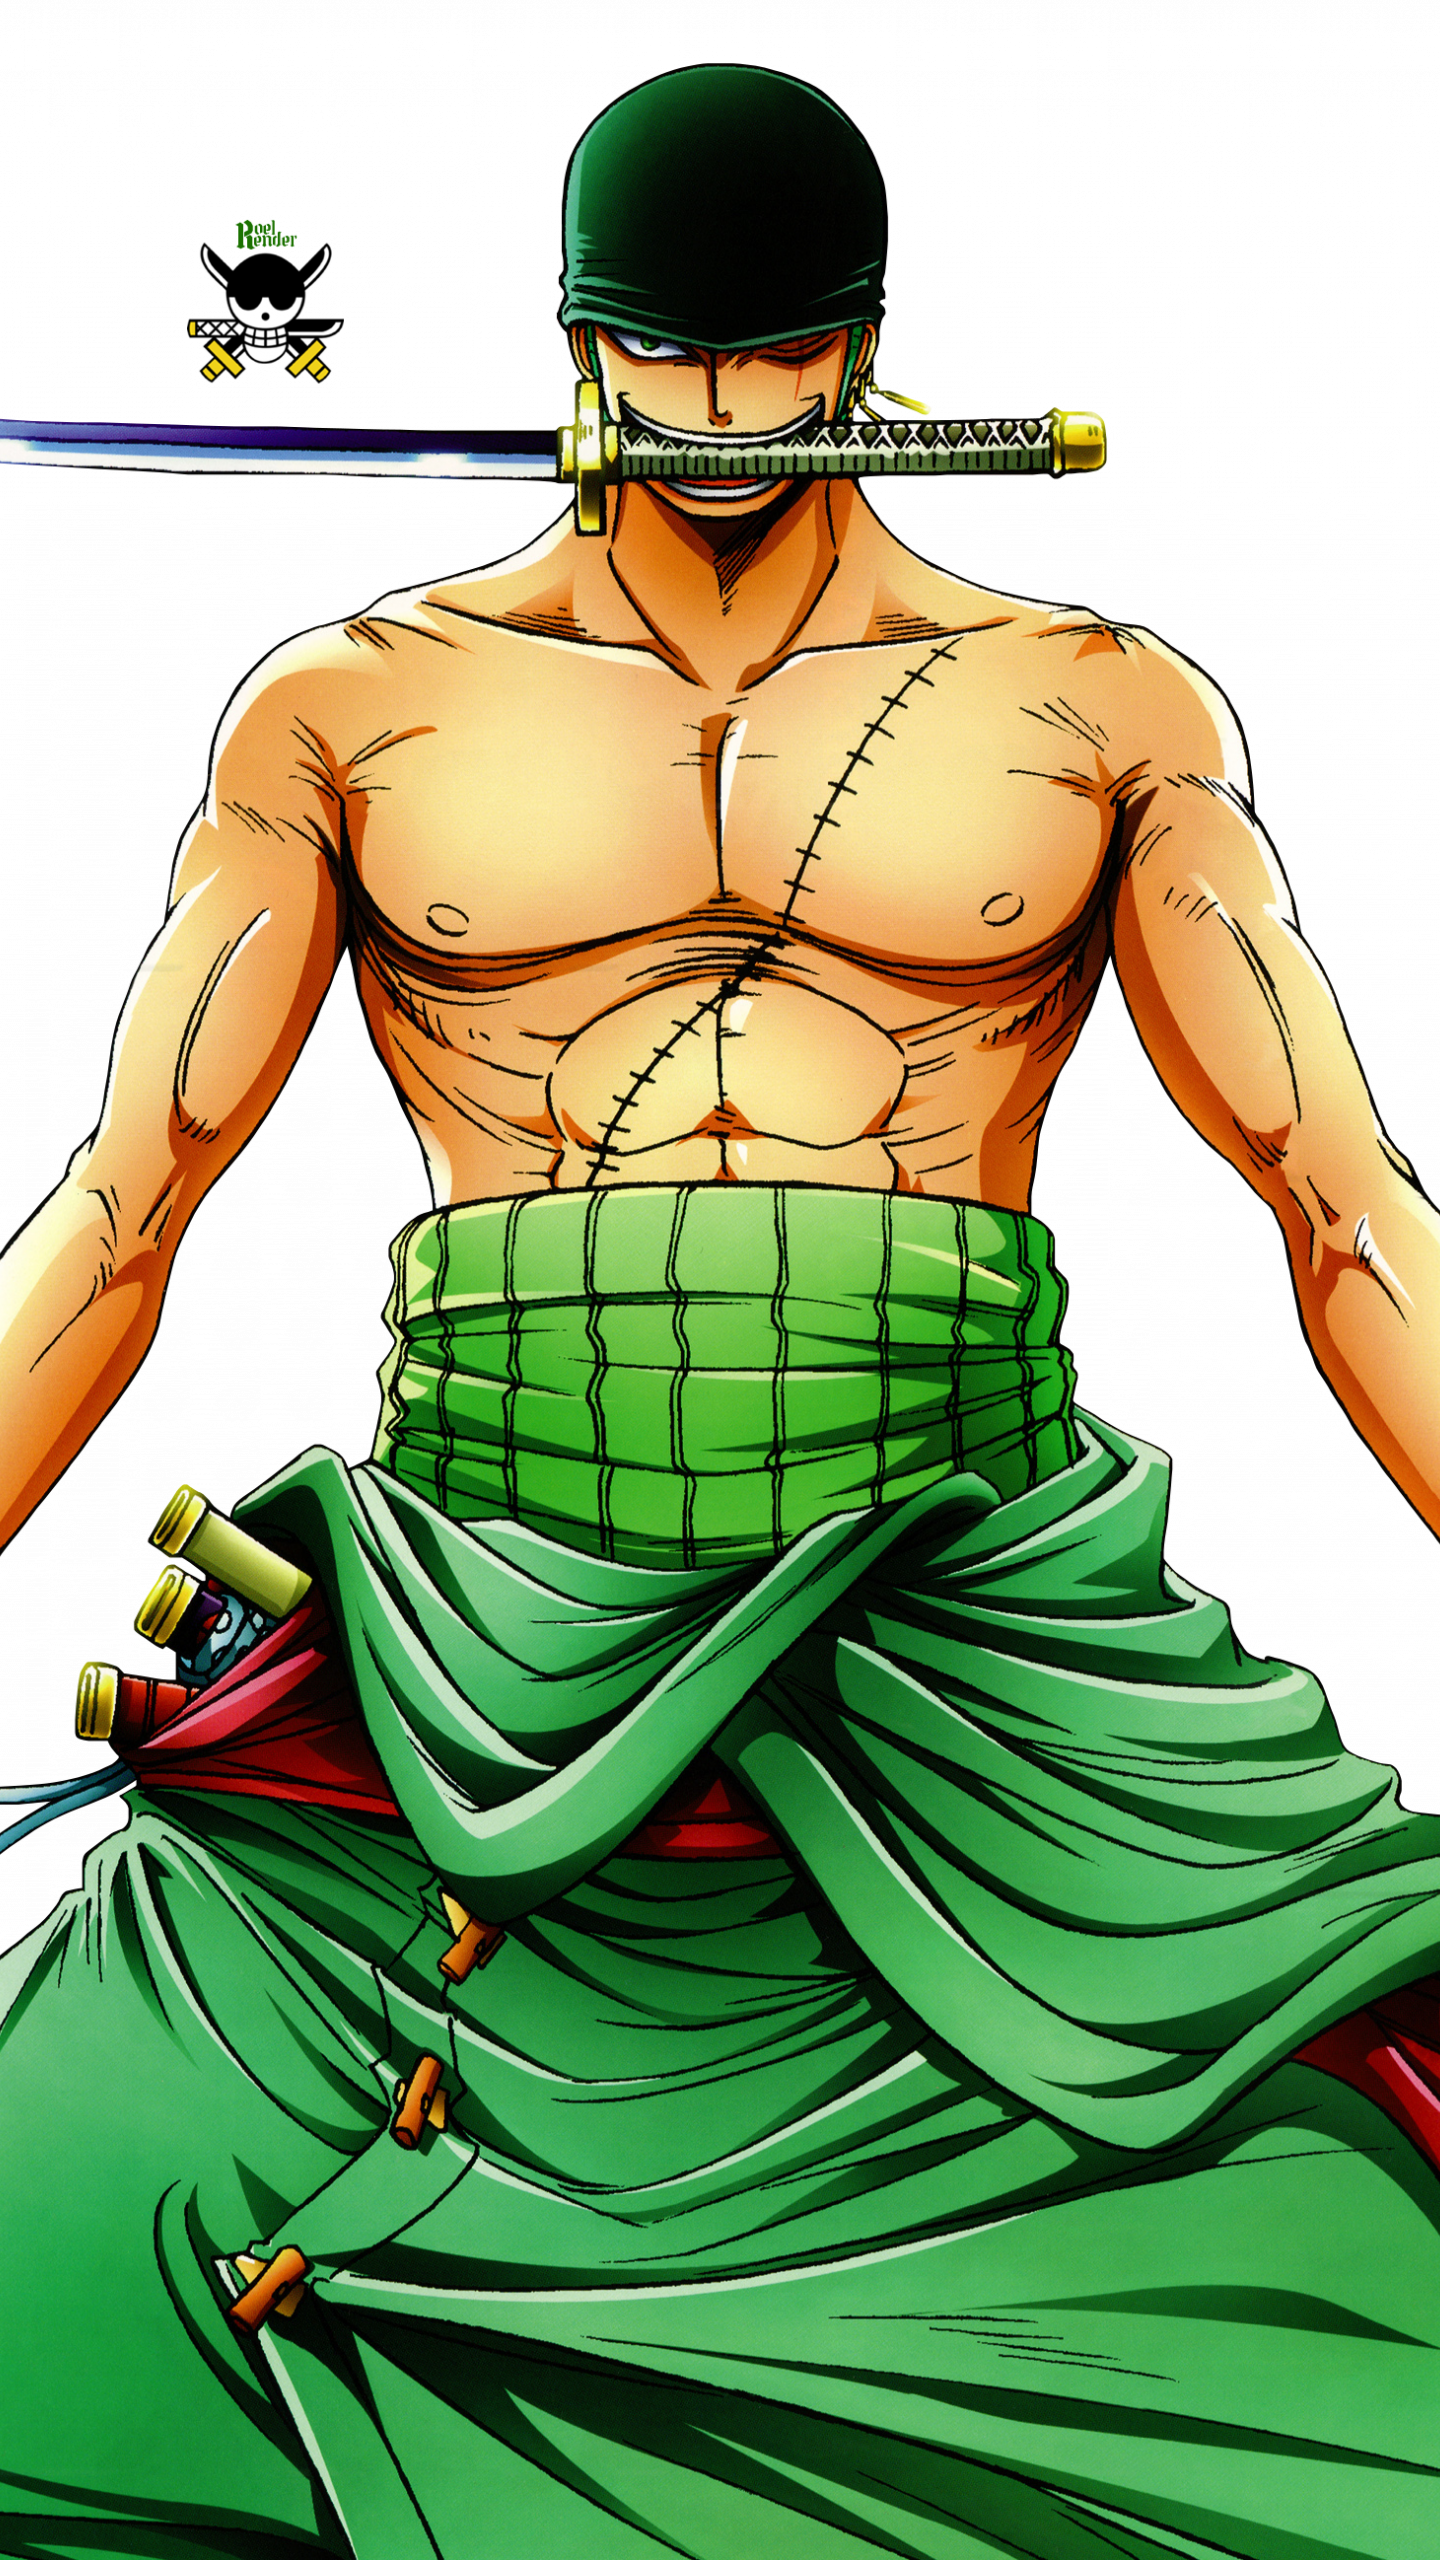 Zoro Png Roronoa Zoro Hd Wallpaper Animation Wallpapers Roronoa Zoro 3 Swords 5183898 Vippng